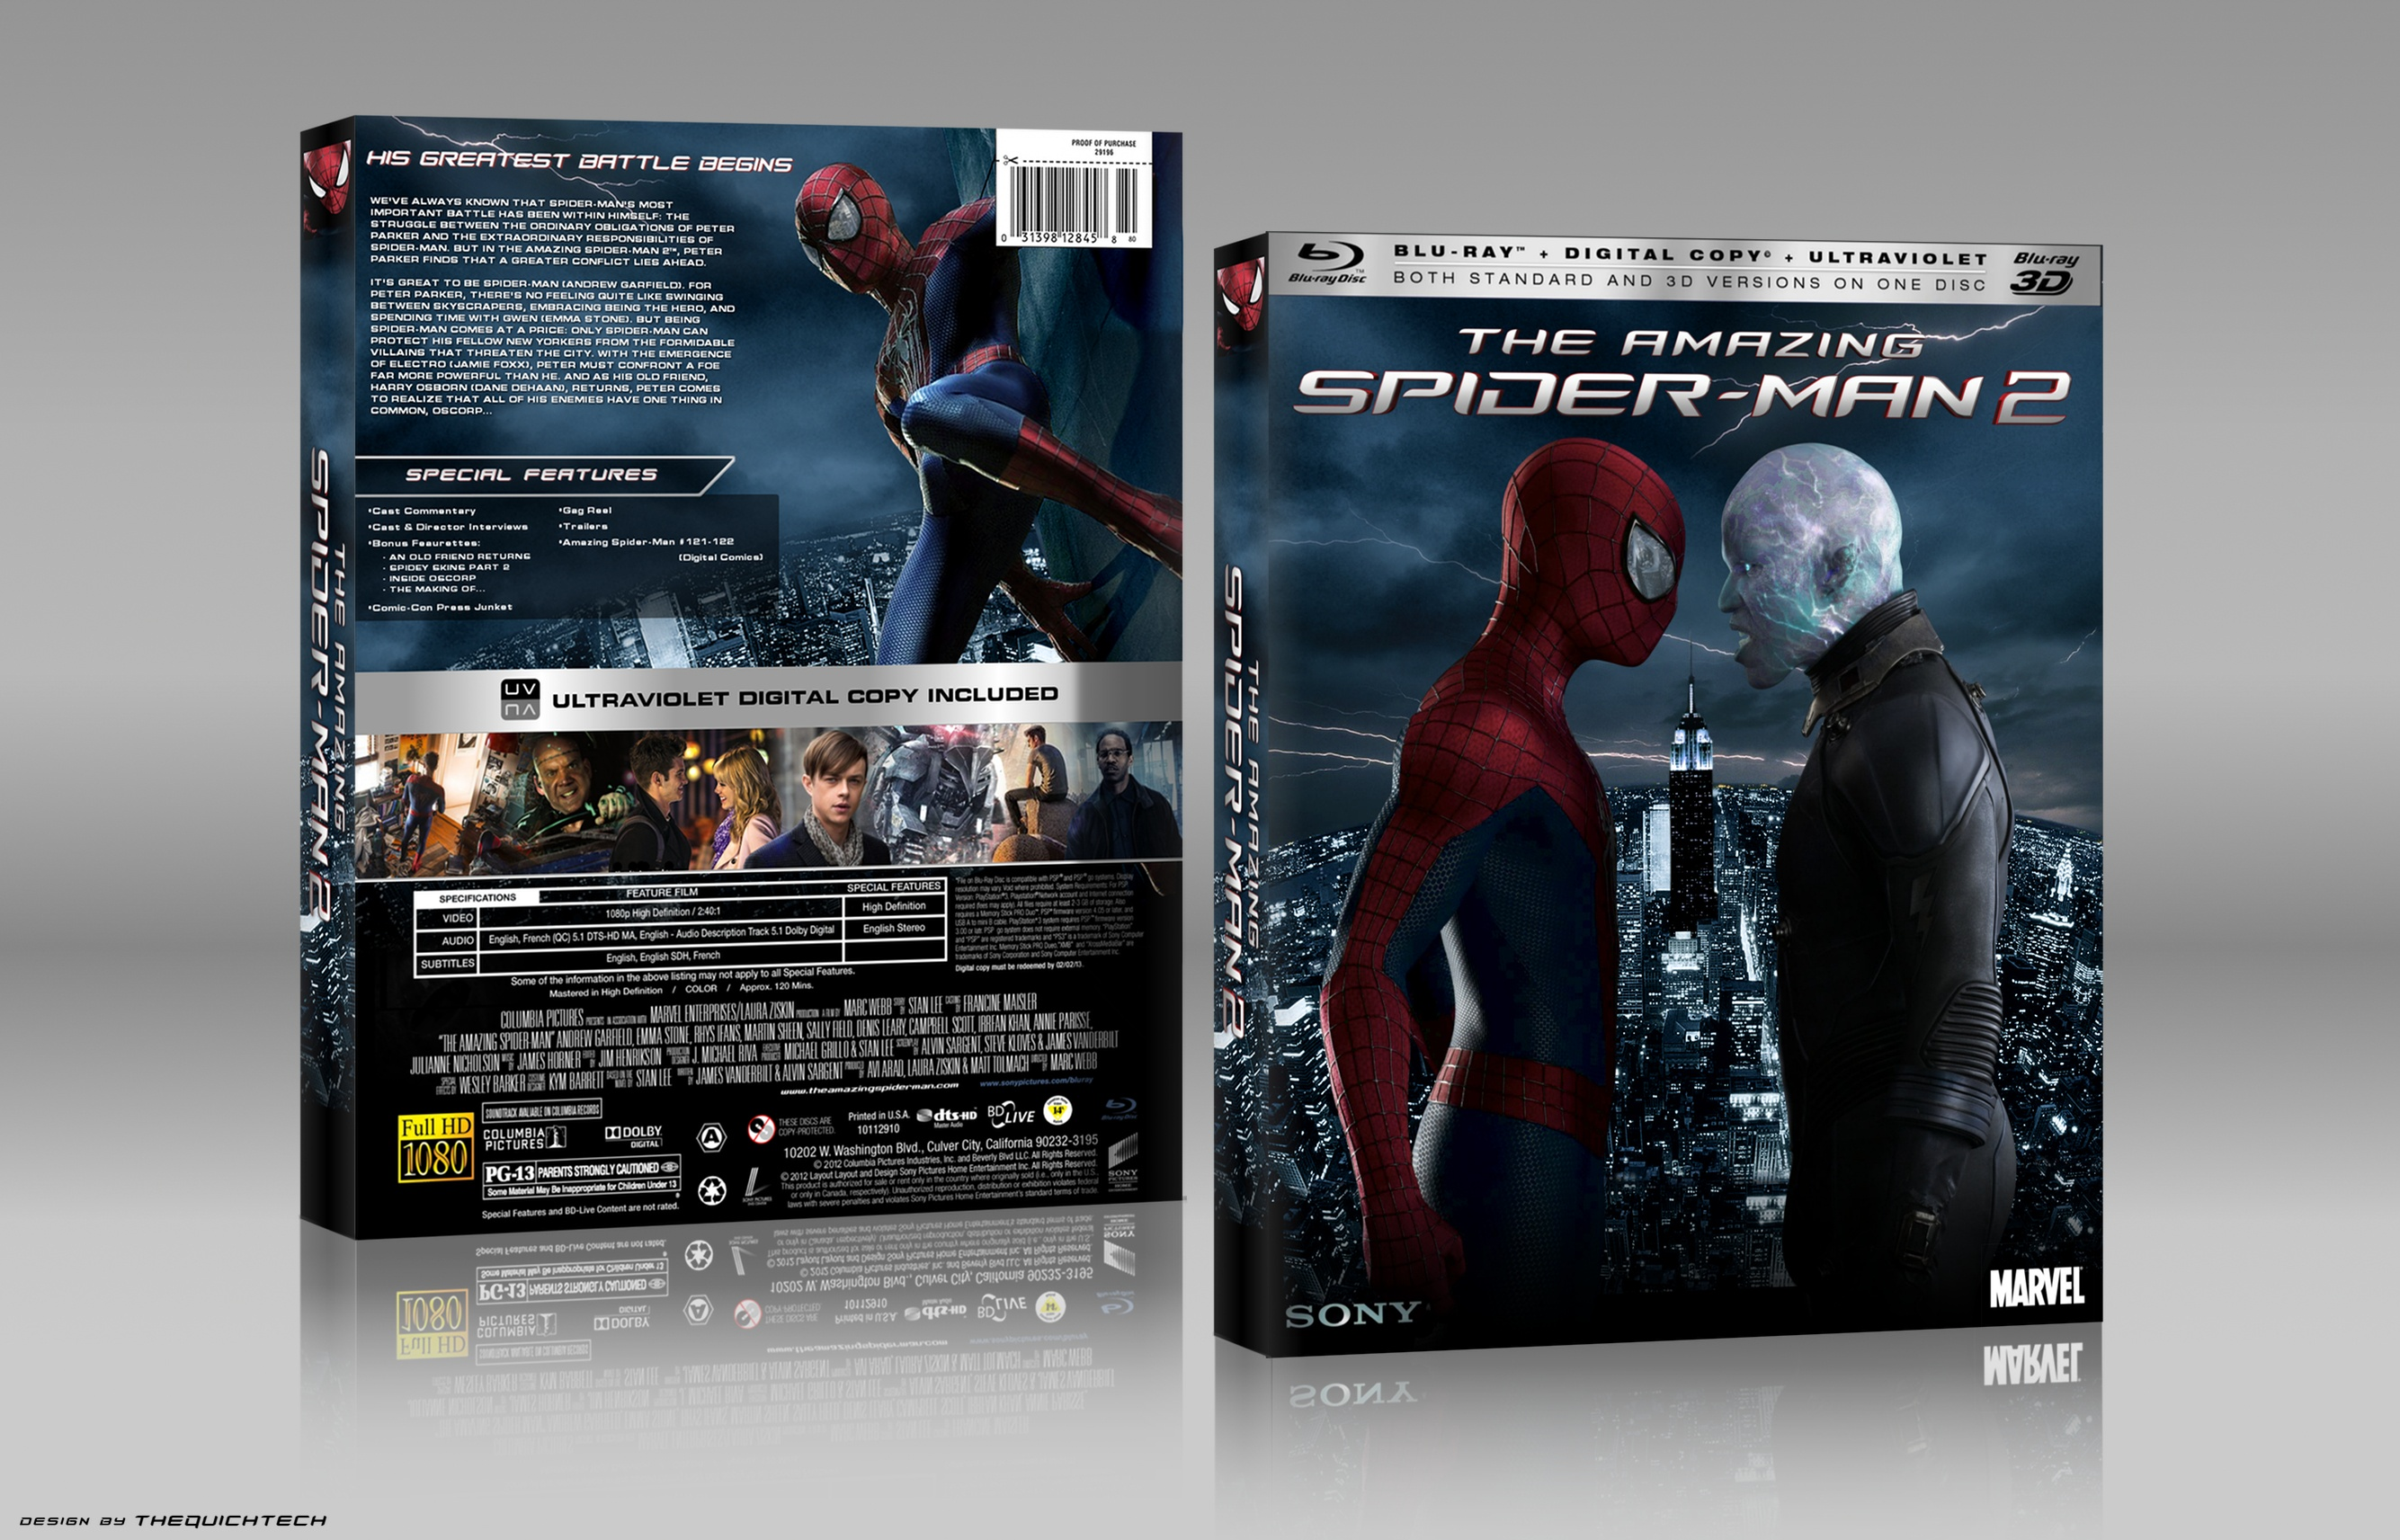 The Amazing Spider-Man 2 box cover